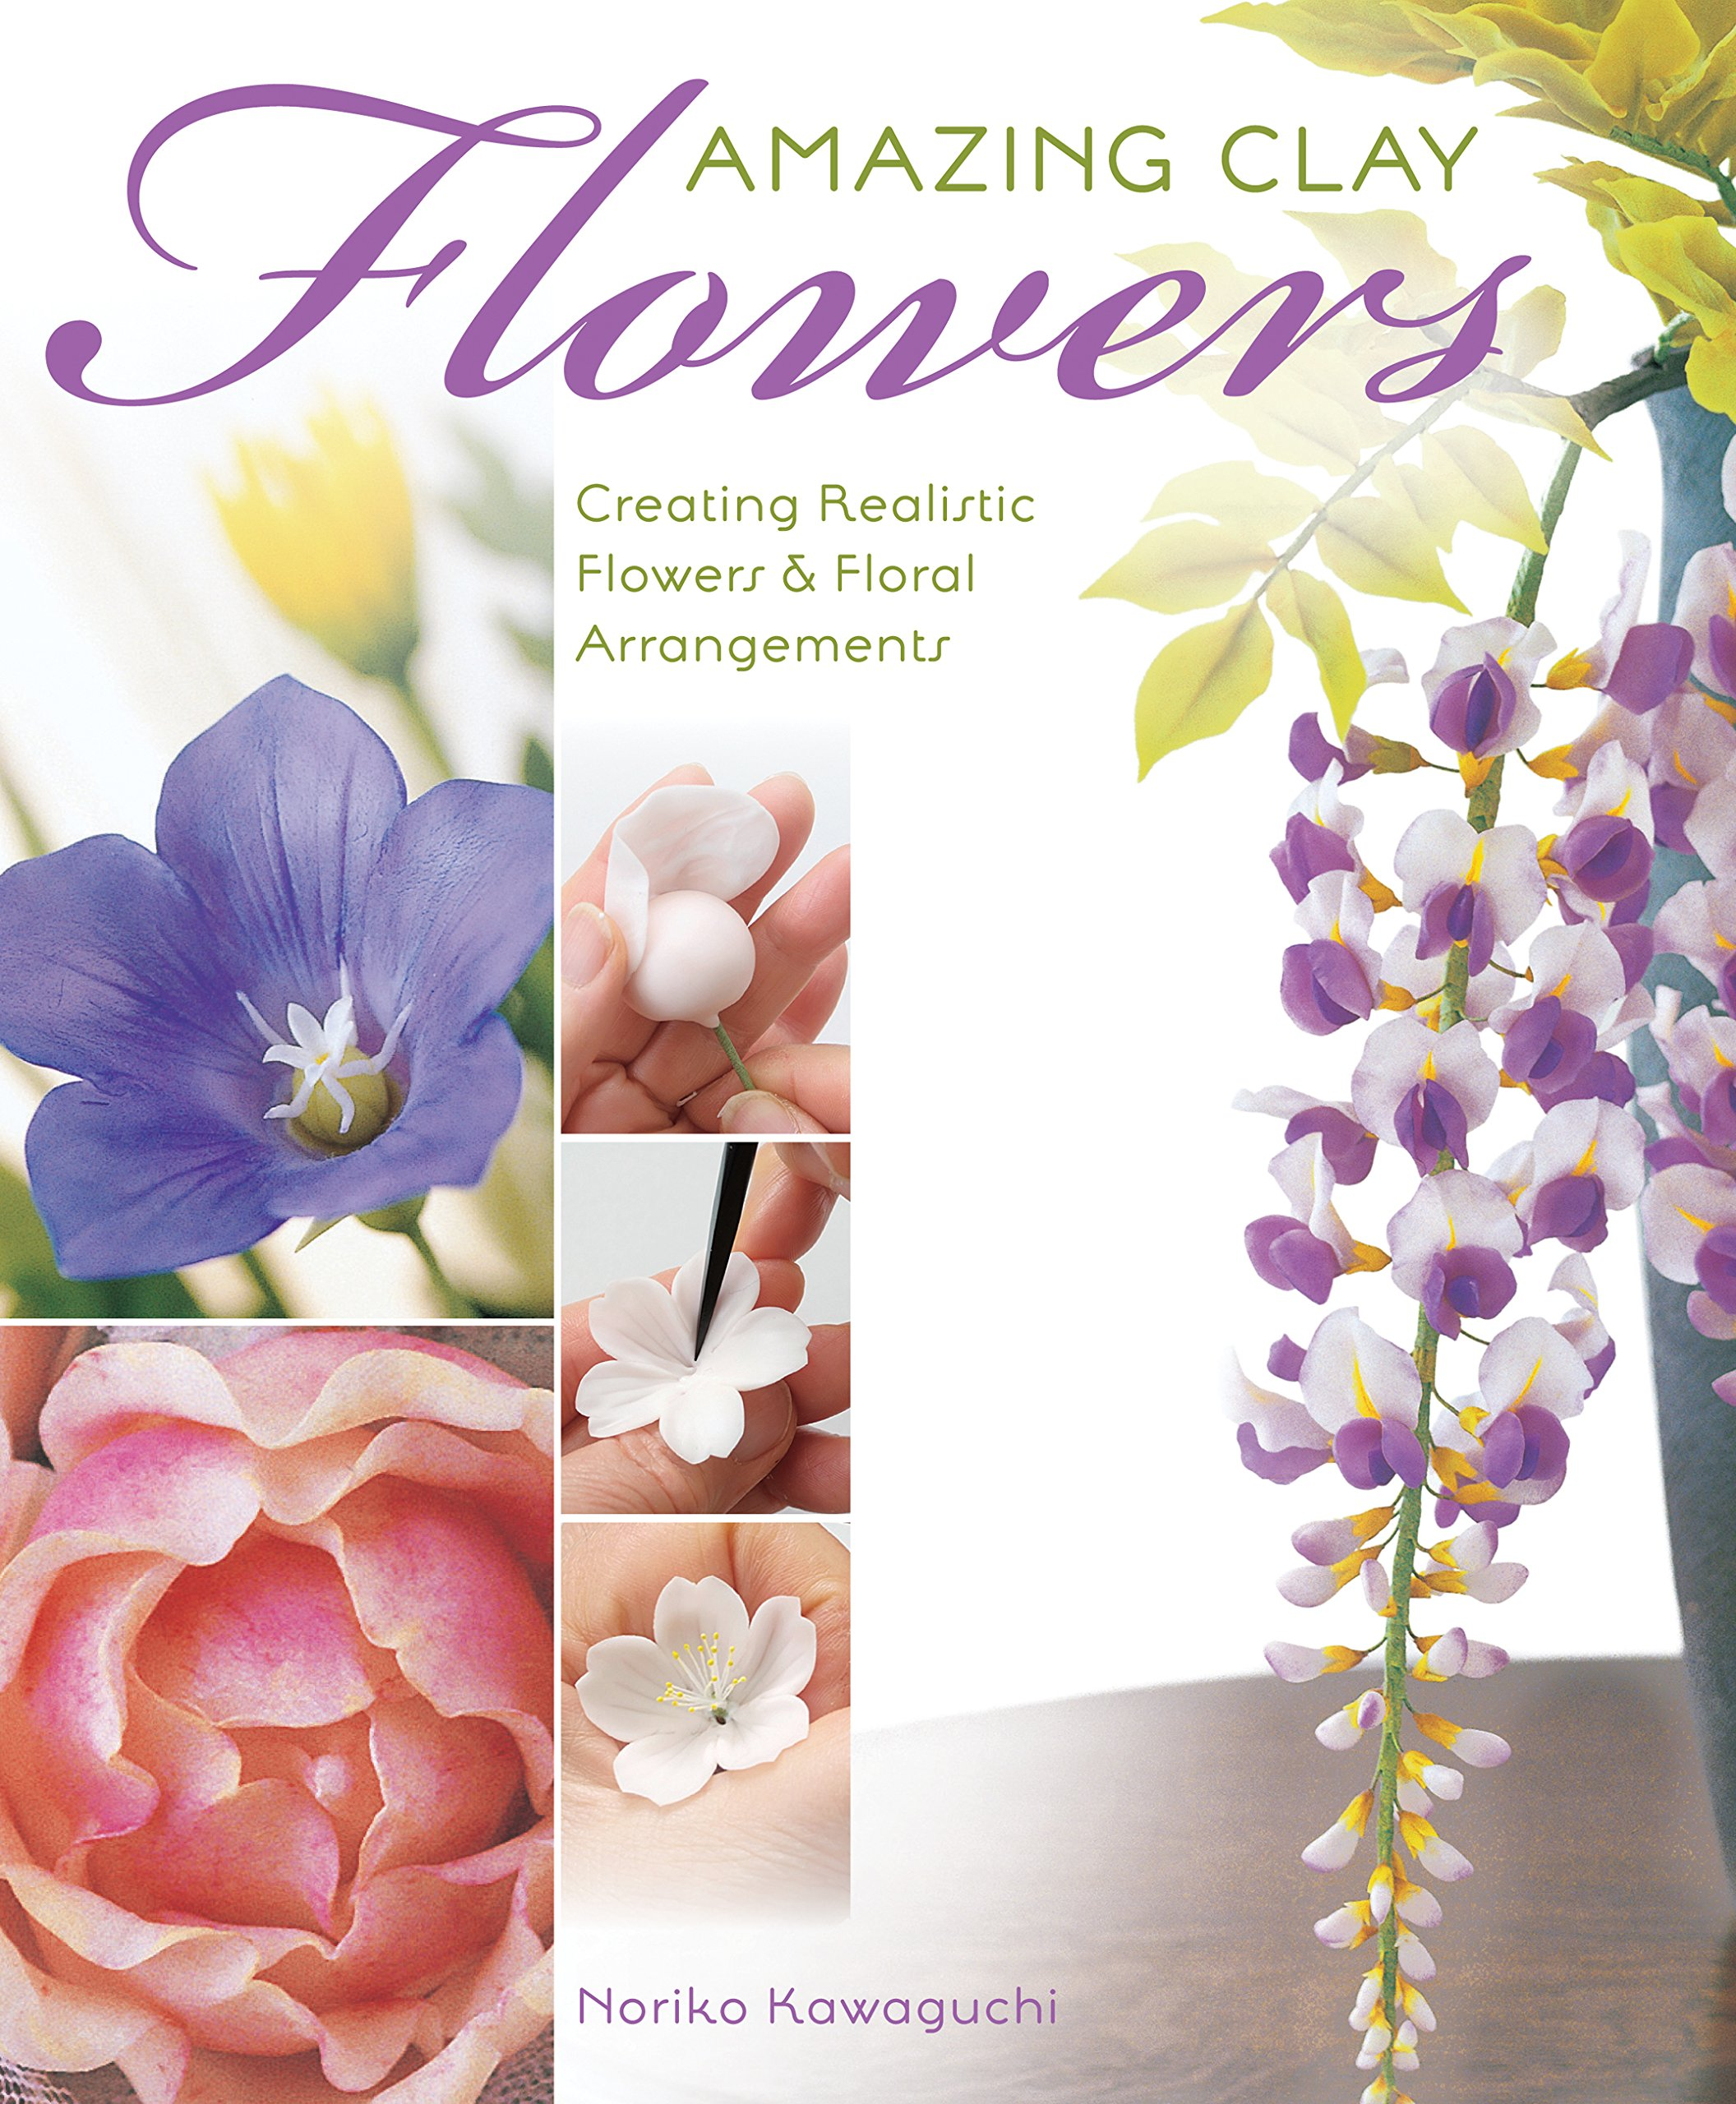 Amazing Clay Flowers: Creating Realistic Flowers & Floral Arrangements by Brand: Creative Publishing international (Image #1)